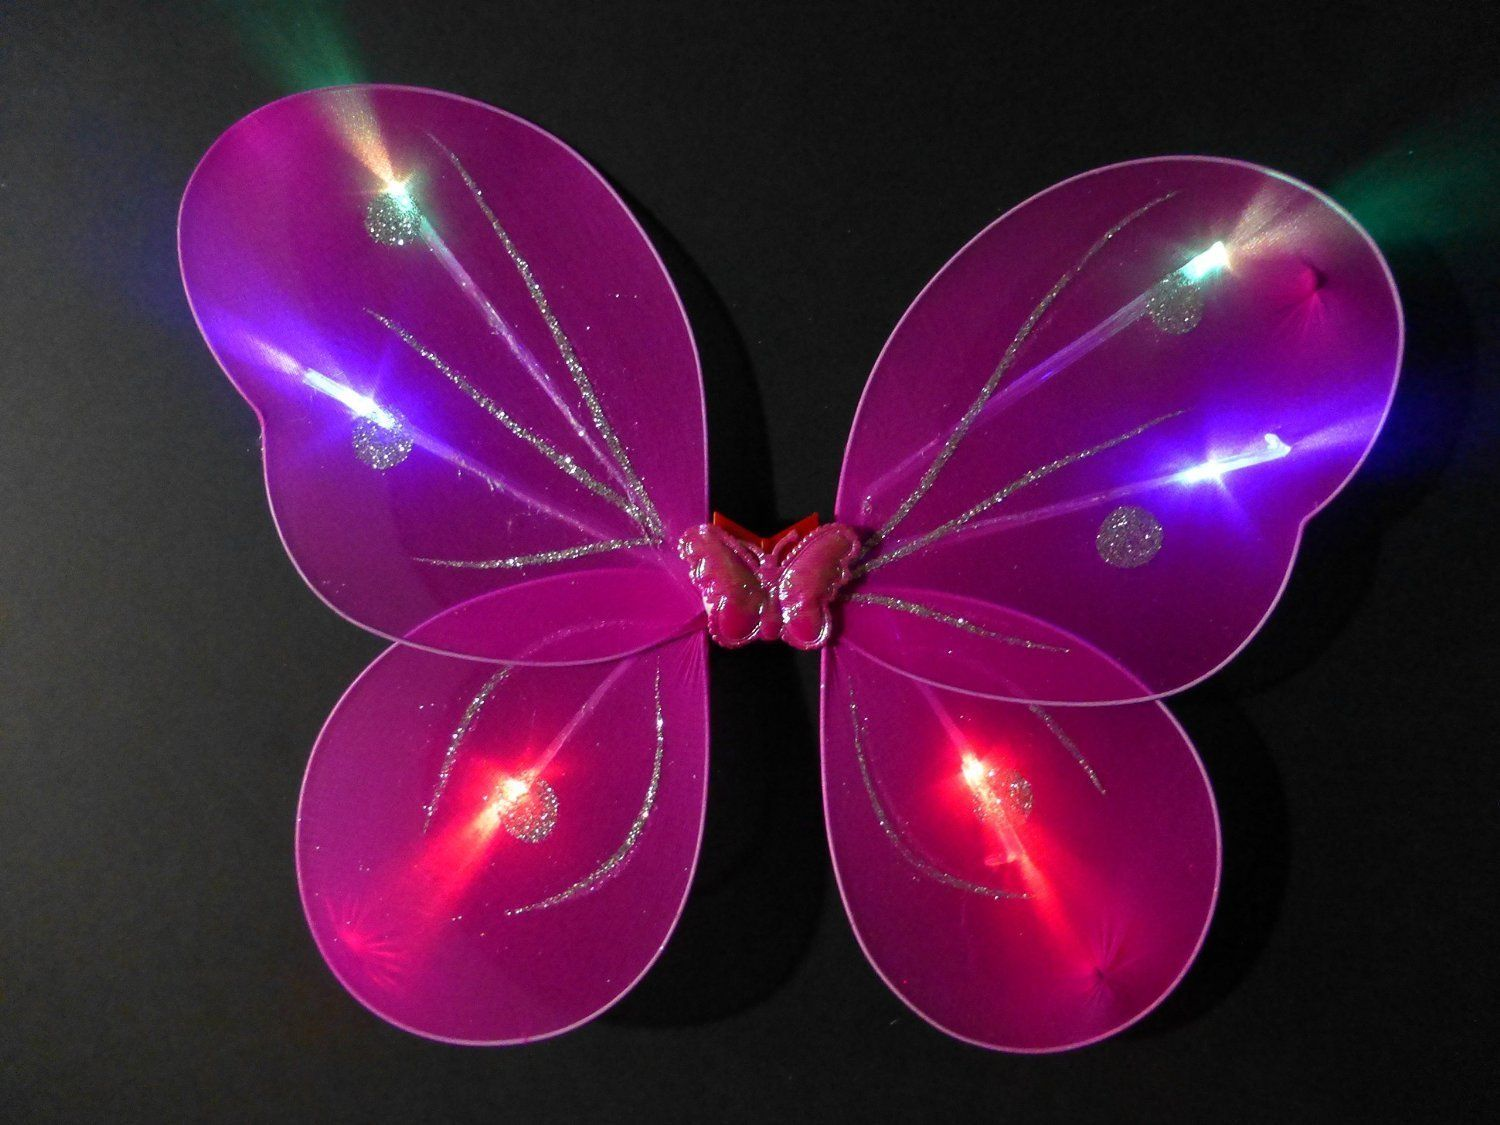 Amazon Com Butterfly Wing Fairy Wing Costume For Girls Glow In The Dark Toys Games Fairy Wings Costume Halloween Costumes For Kids Butterfly Wings